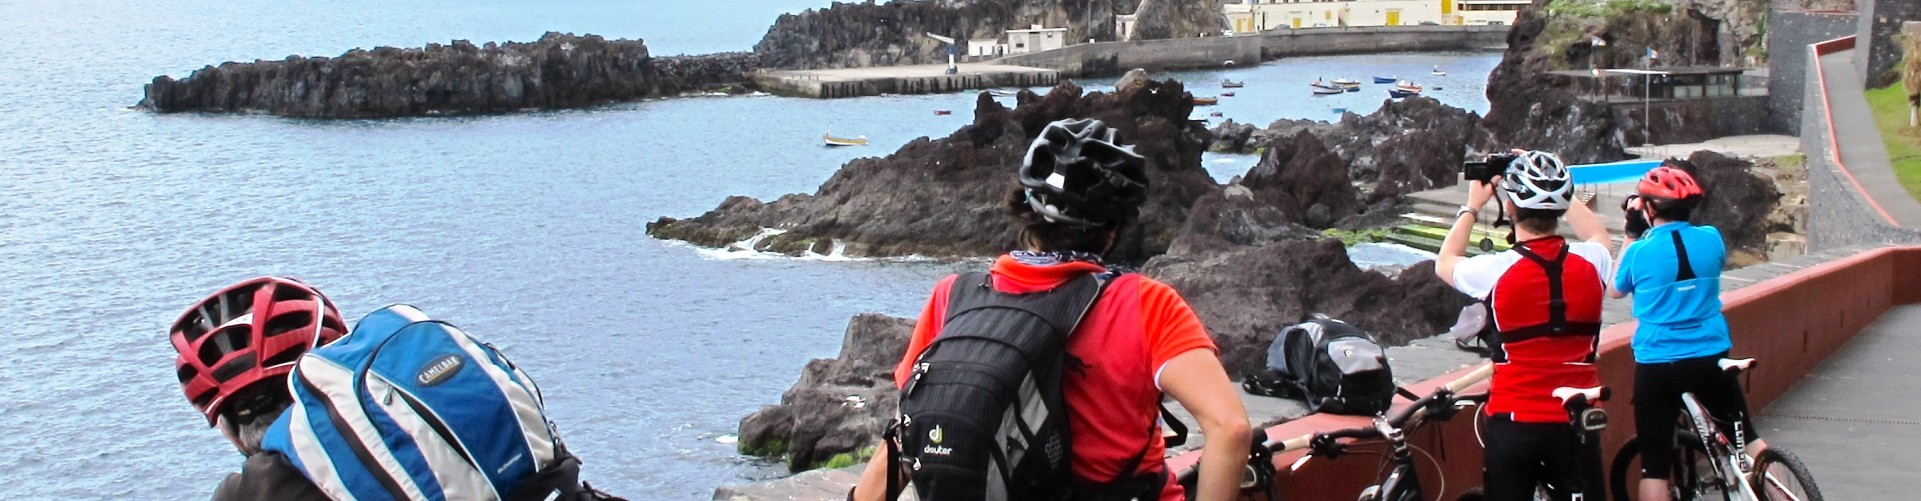 Funchal Bike Tour in Madeira